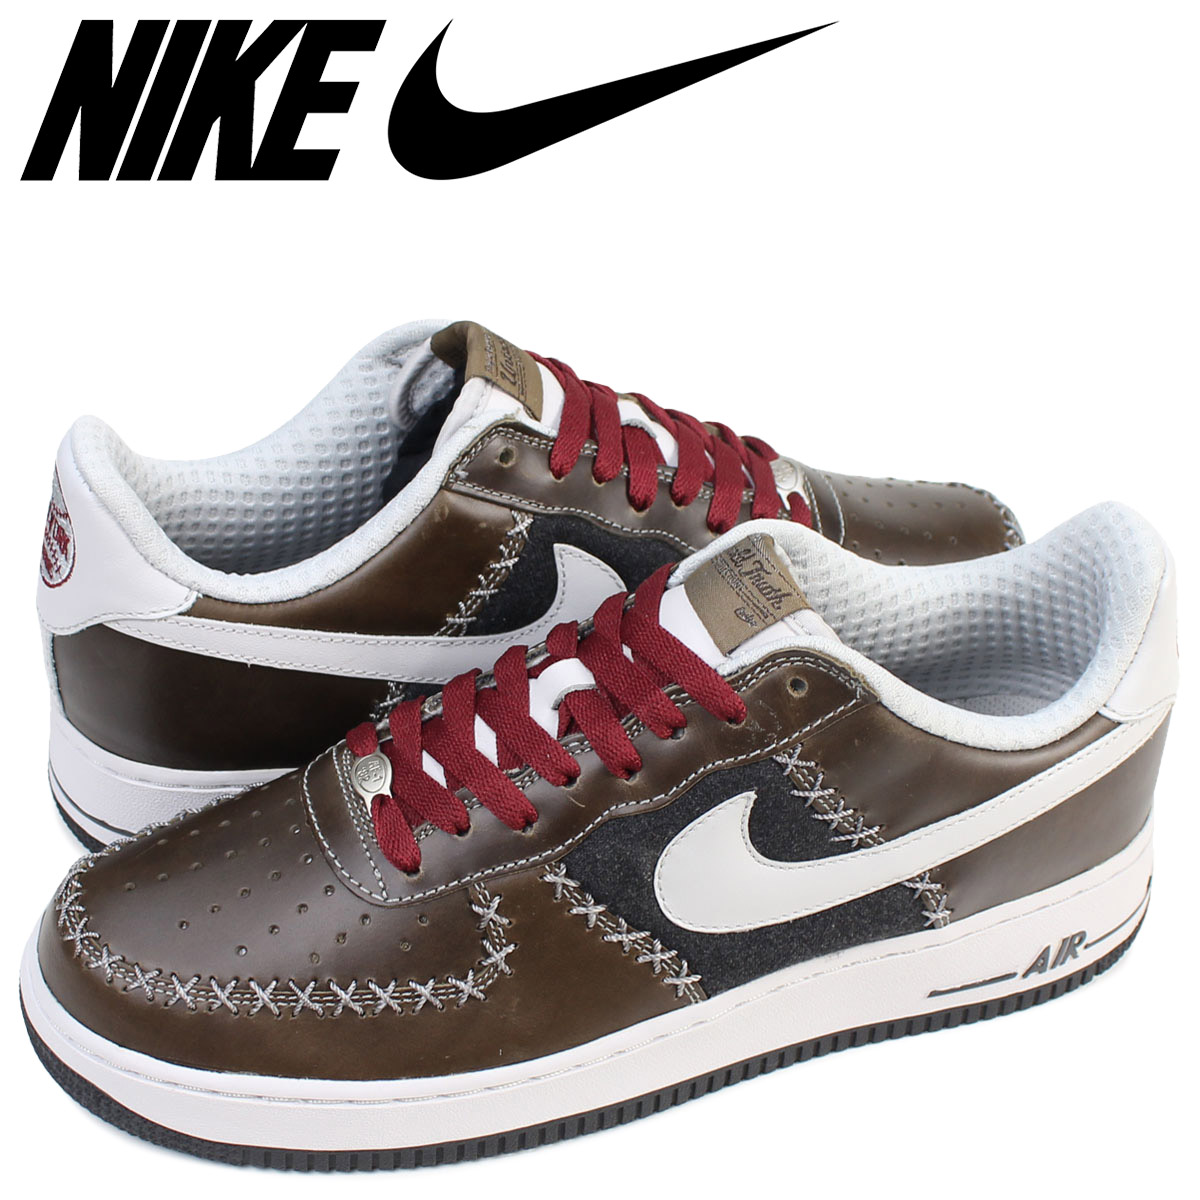 1f9dc8cb1358 Whats up Sports  Nike NIKE air force 1 sneakers AIR FORCE 1 LOW ...